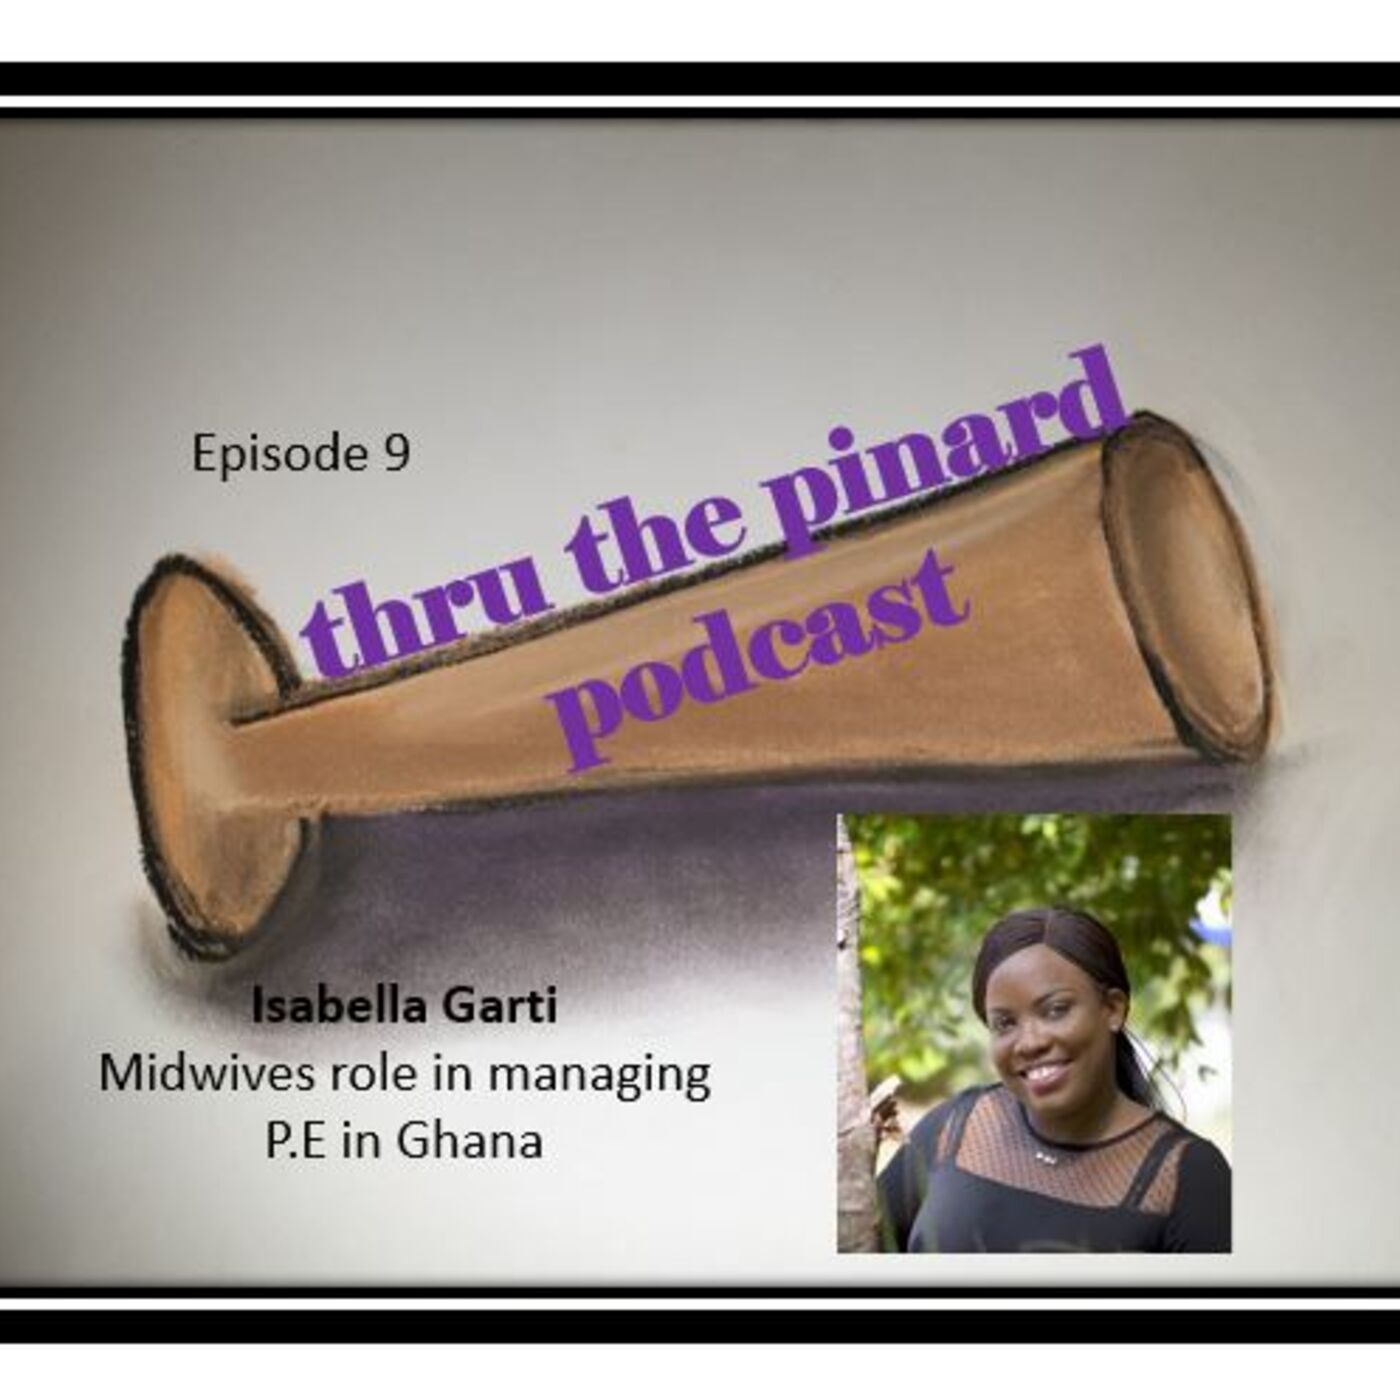 Episode 9 - Isabell Garti & Midwives role in managing PE in Ghana